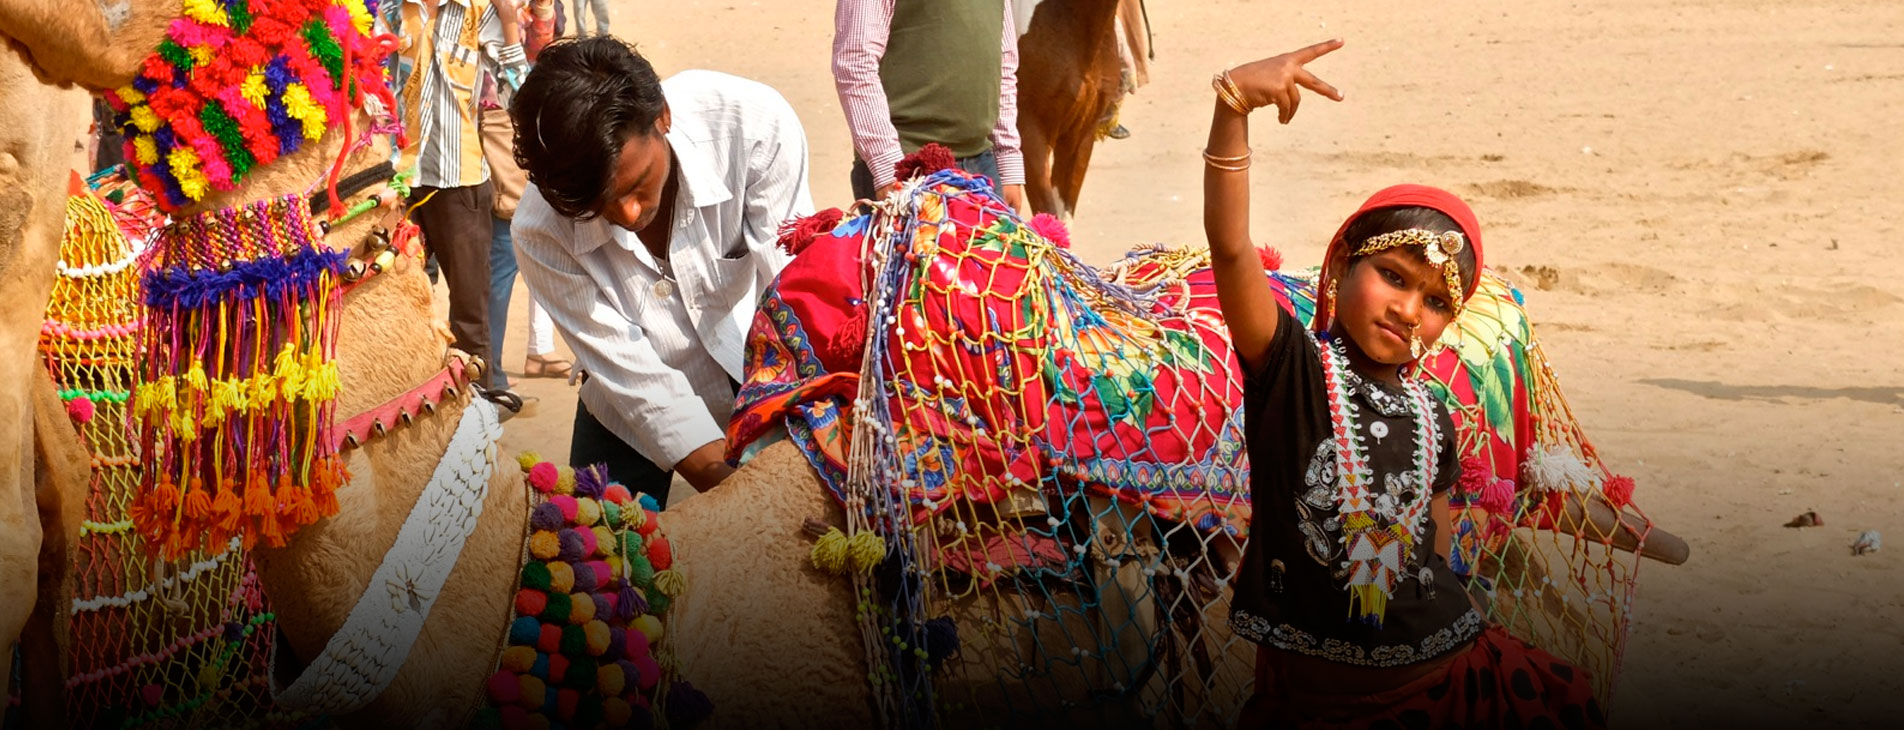 Unusual rituals festivals india